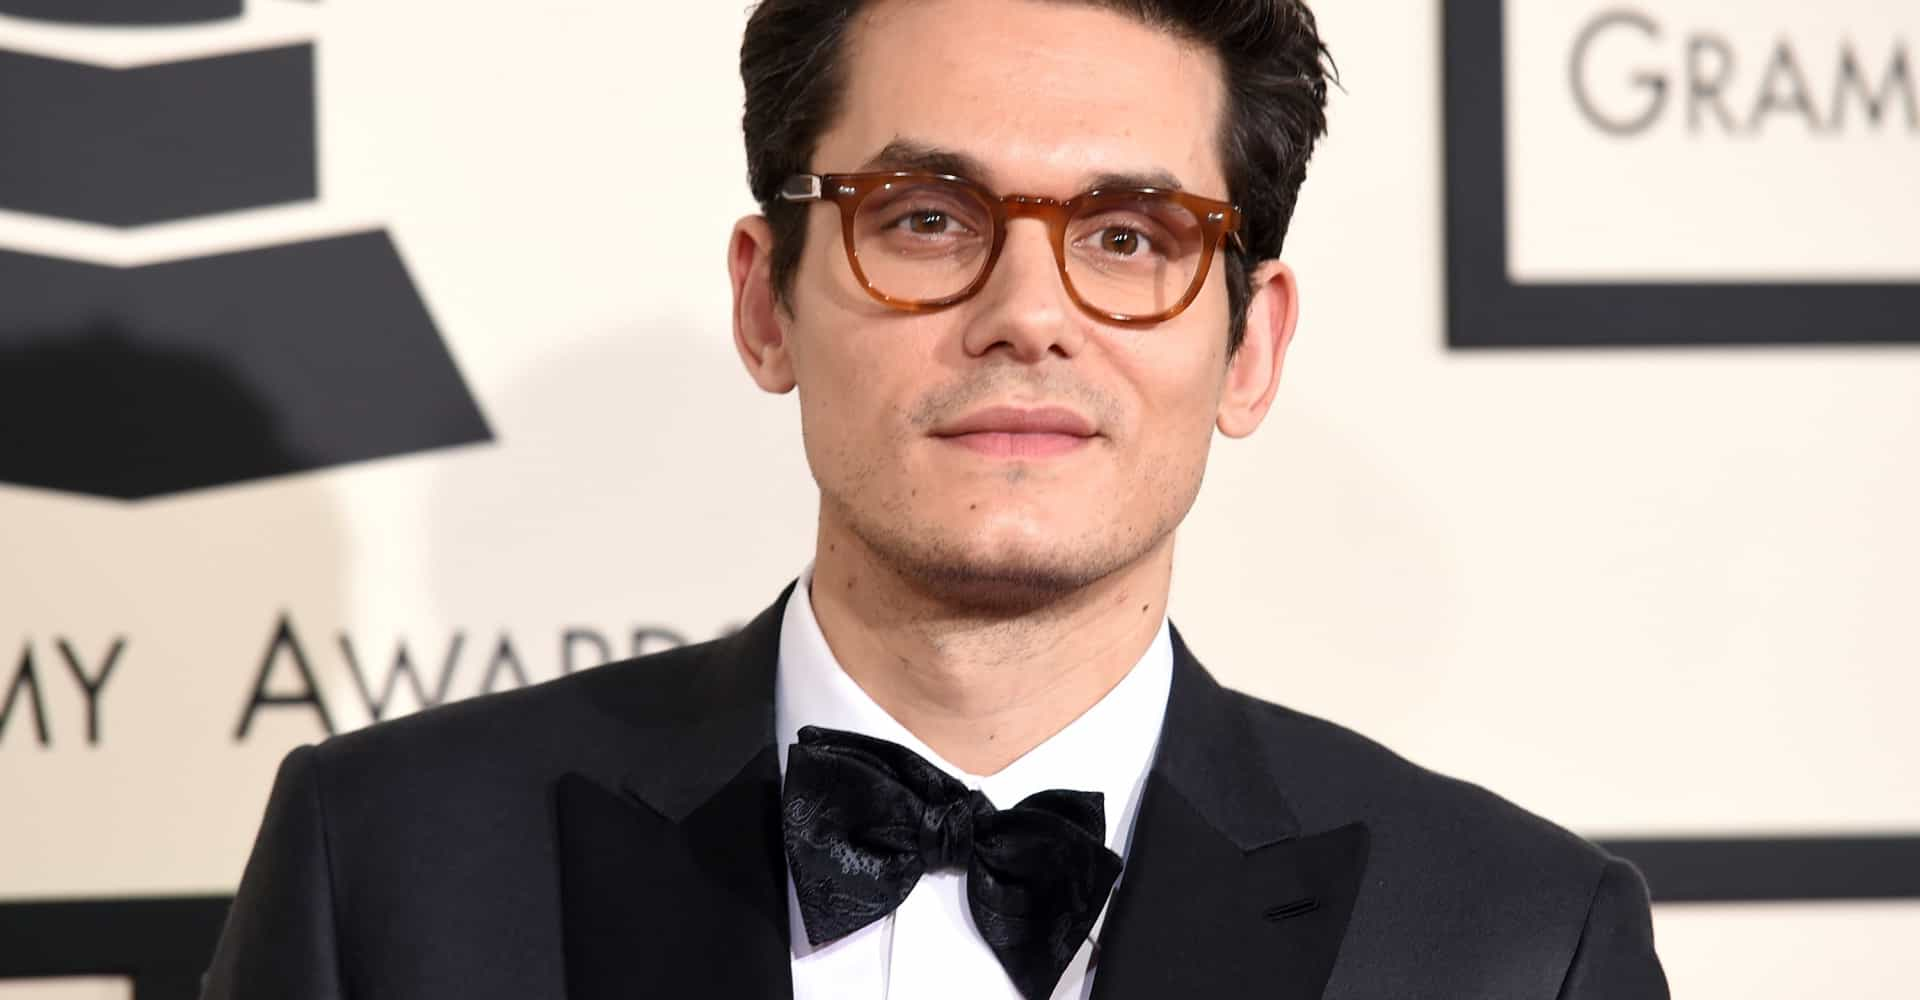 John Mayer's secret to wrinkle-free skin is never loving anybody